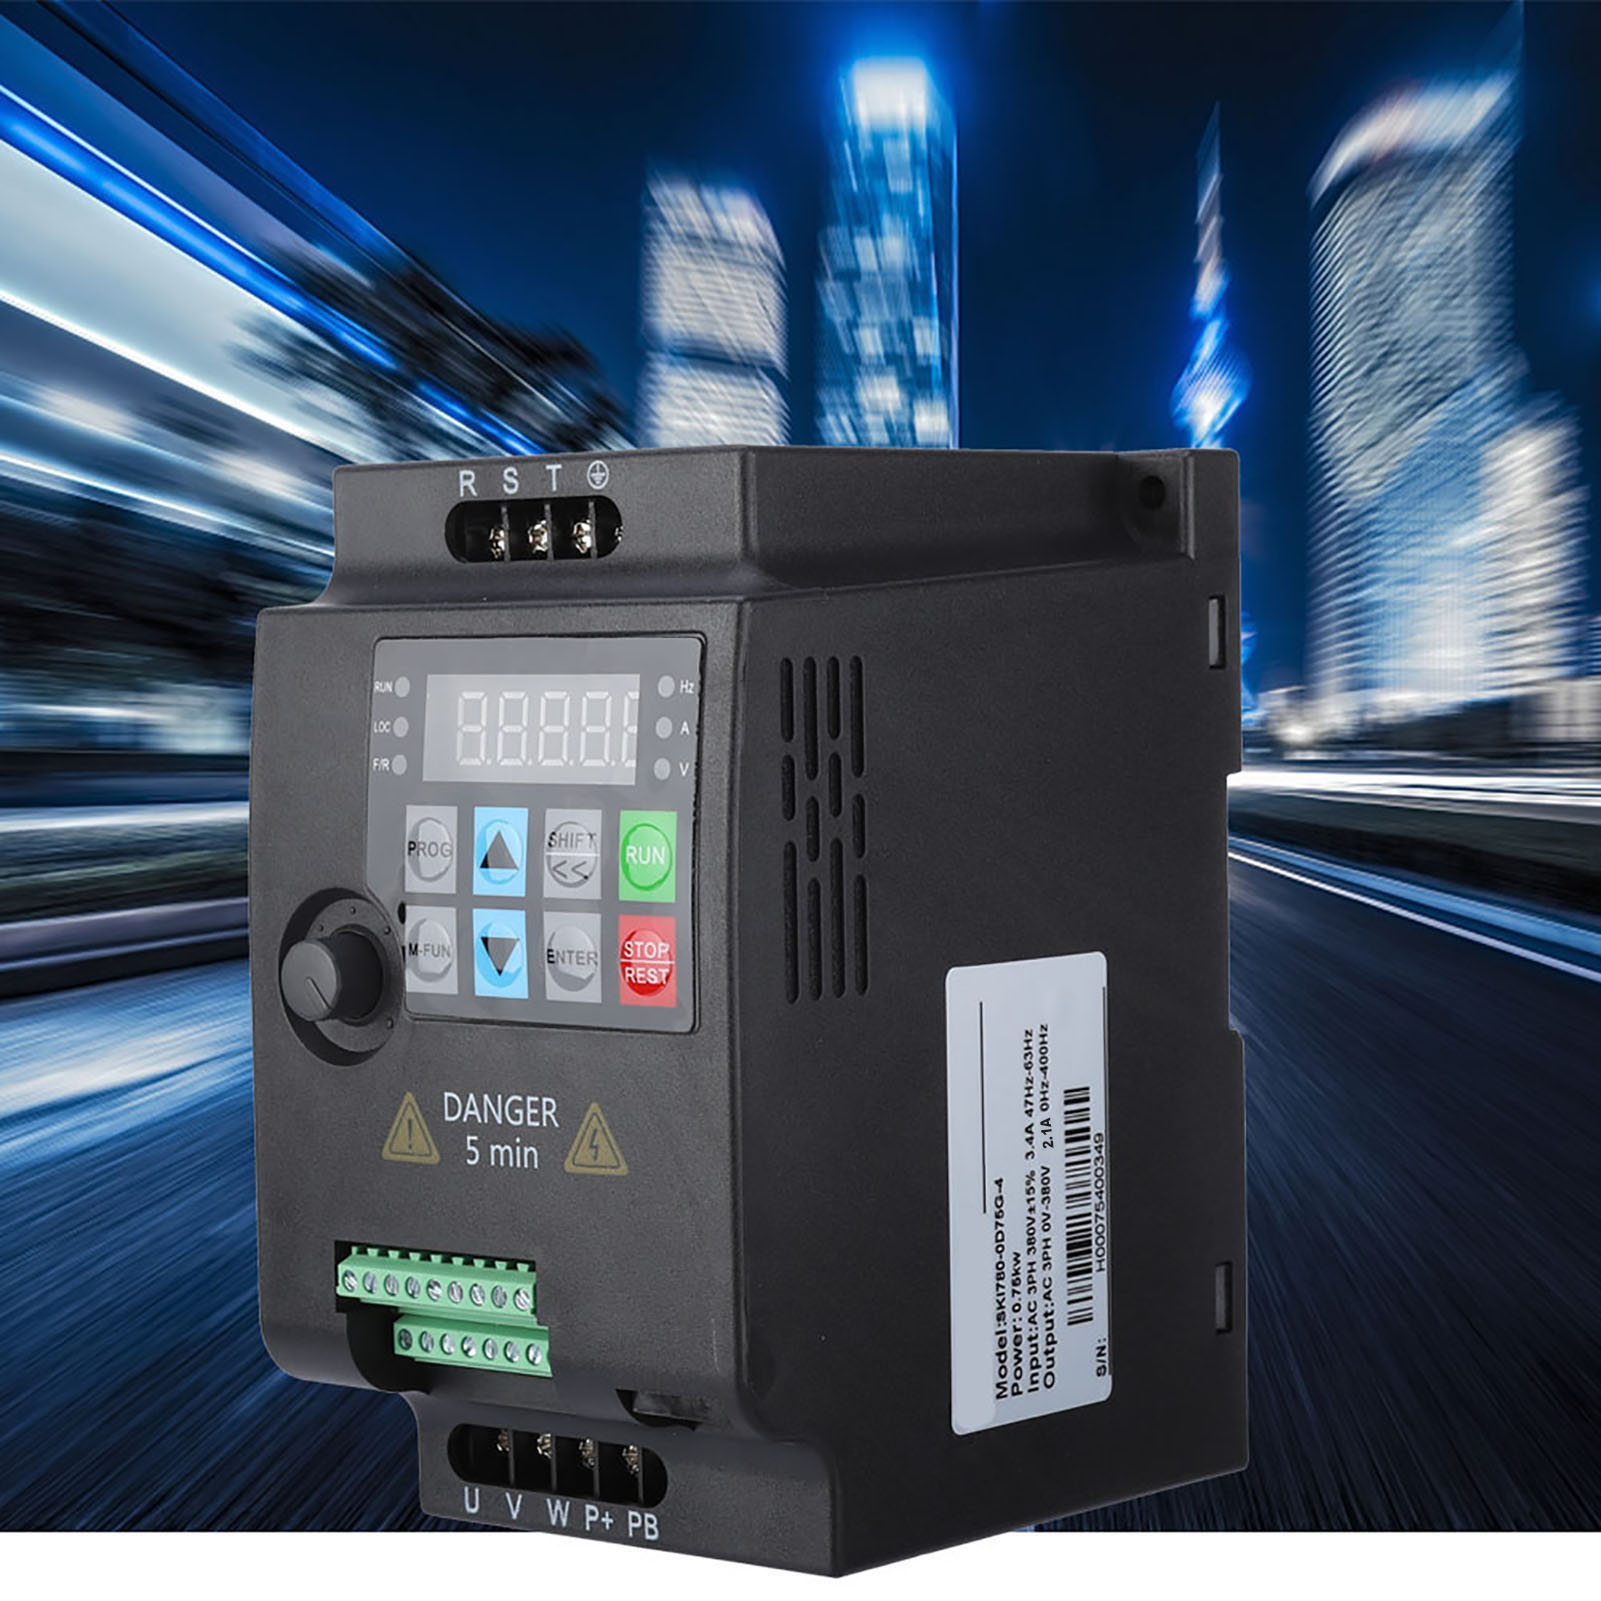 0.75KW-2.2KW Single Phase//3-Phase Variable Frequency Drive Inverter Motor VFD AC